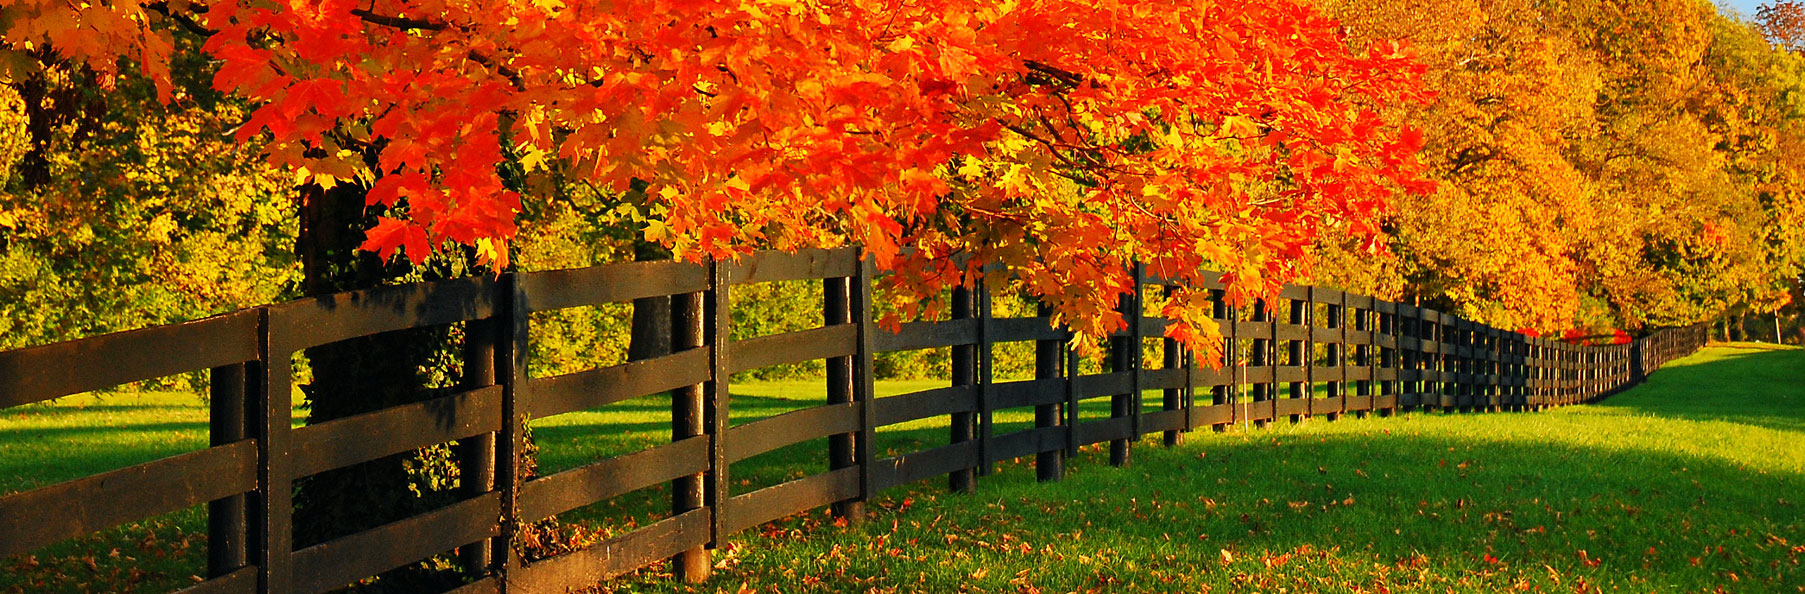 Trees turning yellow and red during fall all along a wooden fence